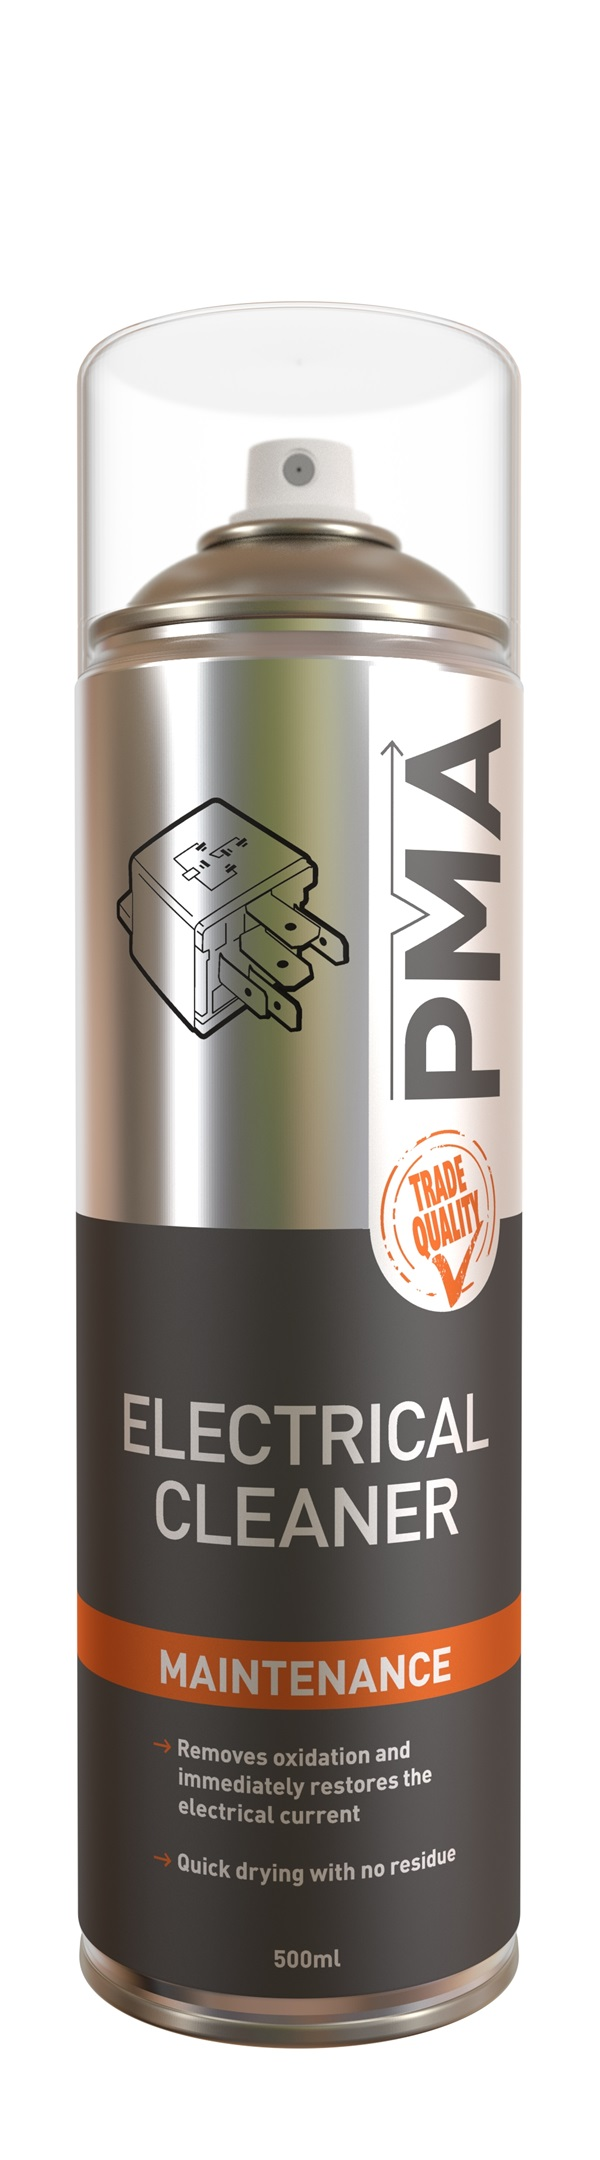 PMA ELCLE Electrical Contact Cleaner Spray Aerosol 500ml